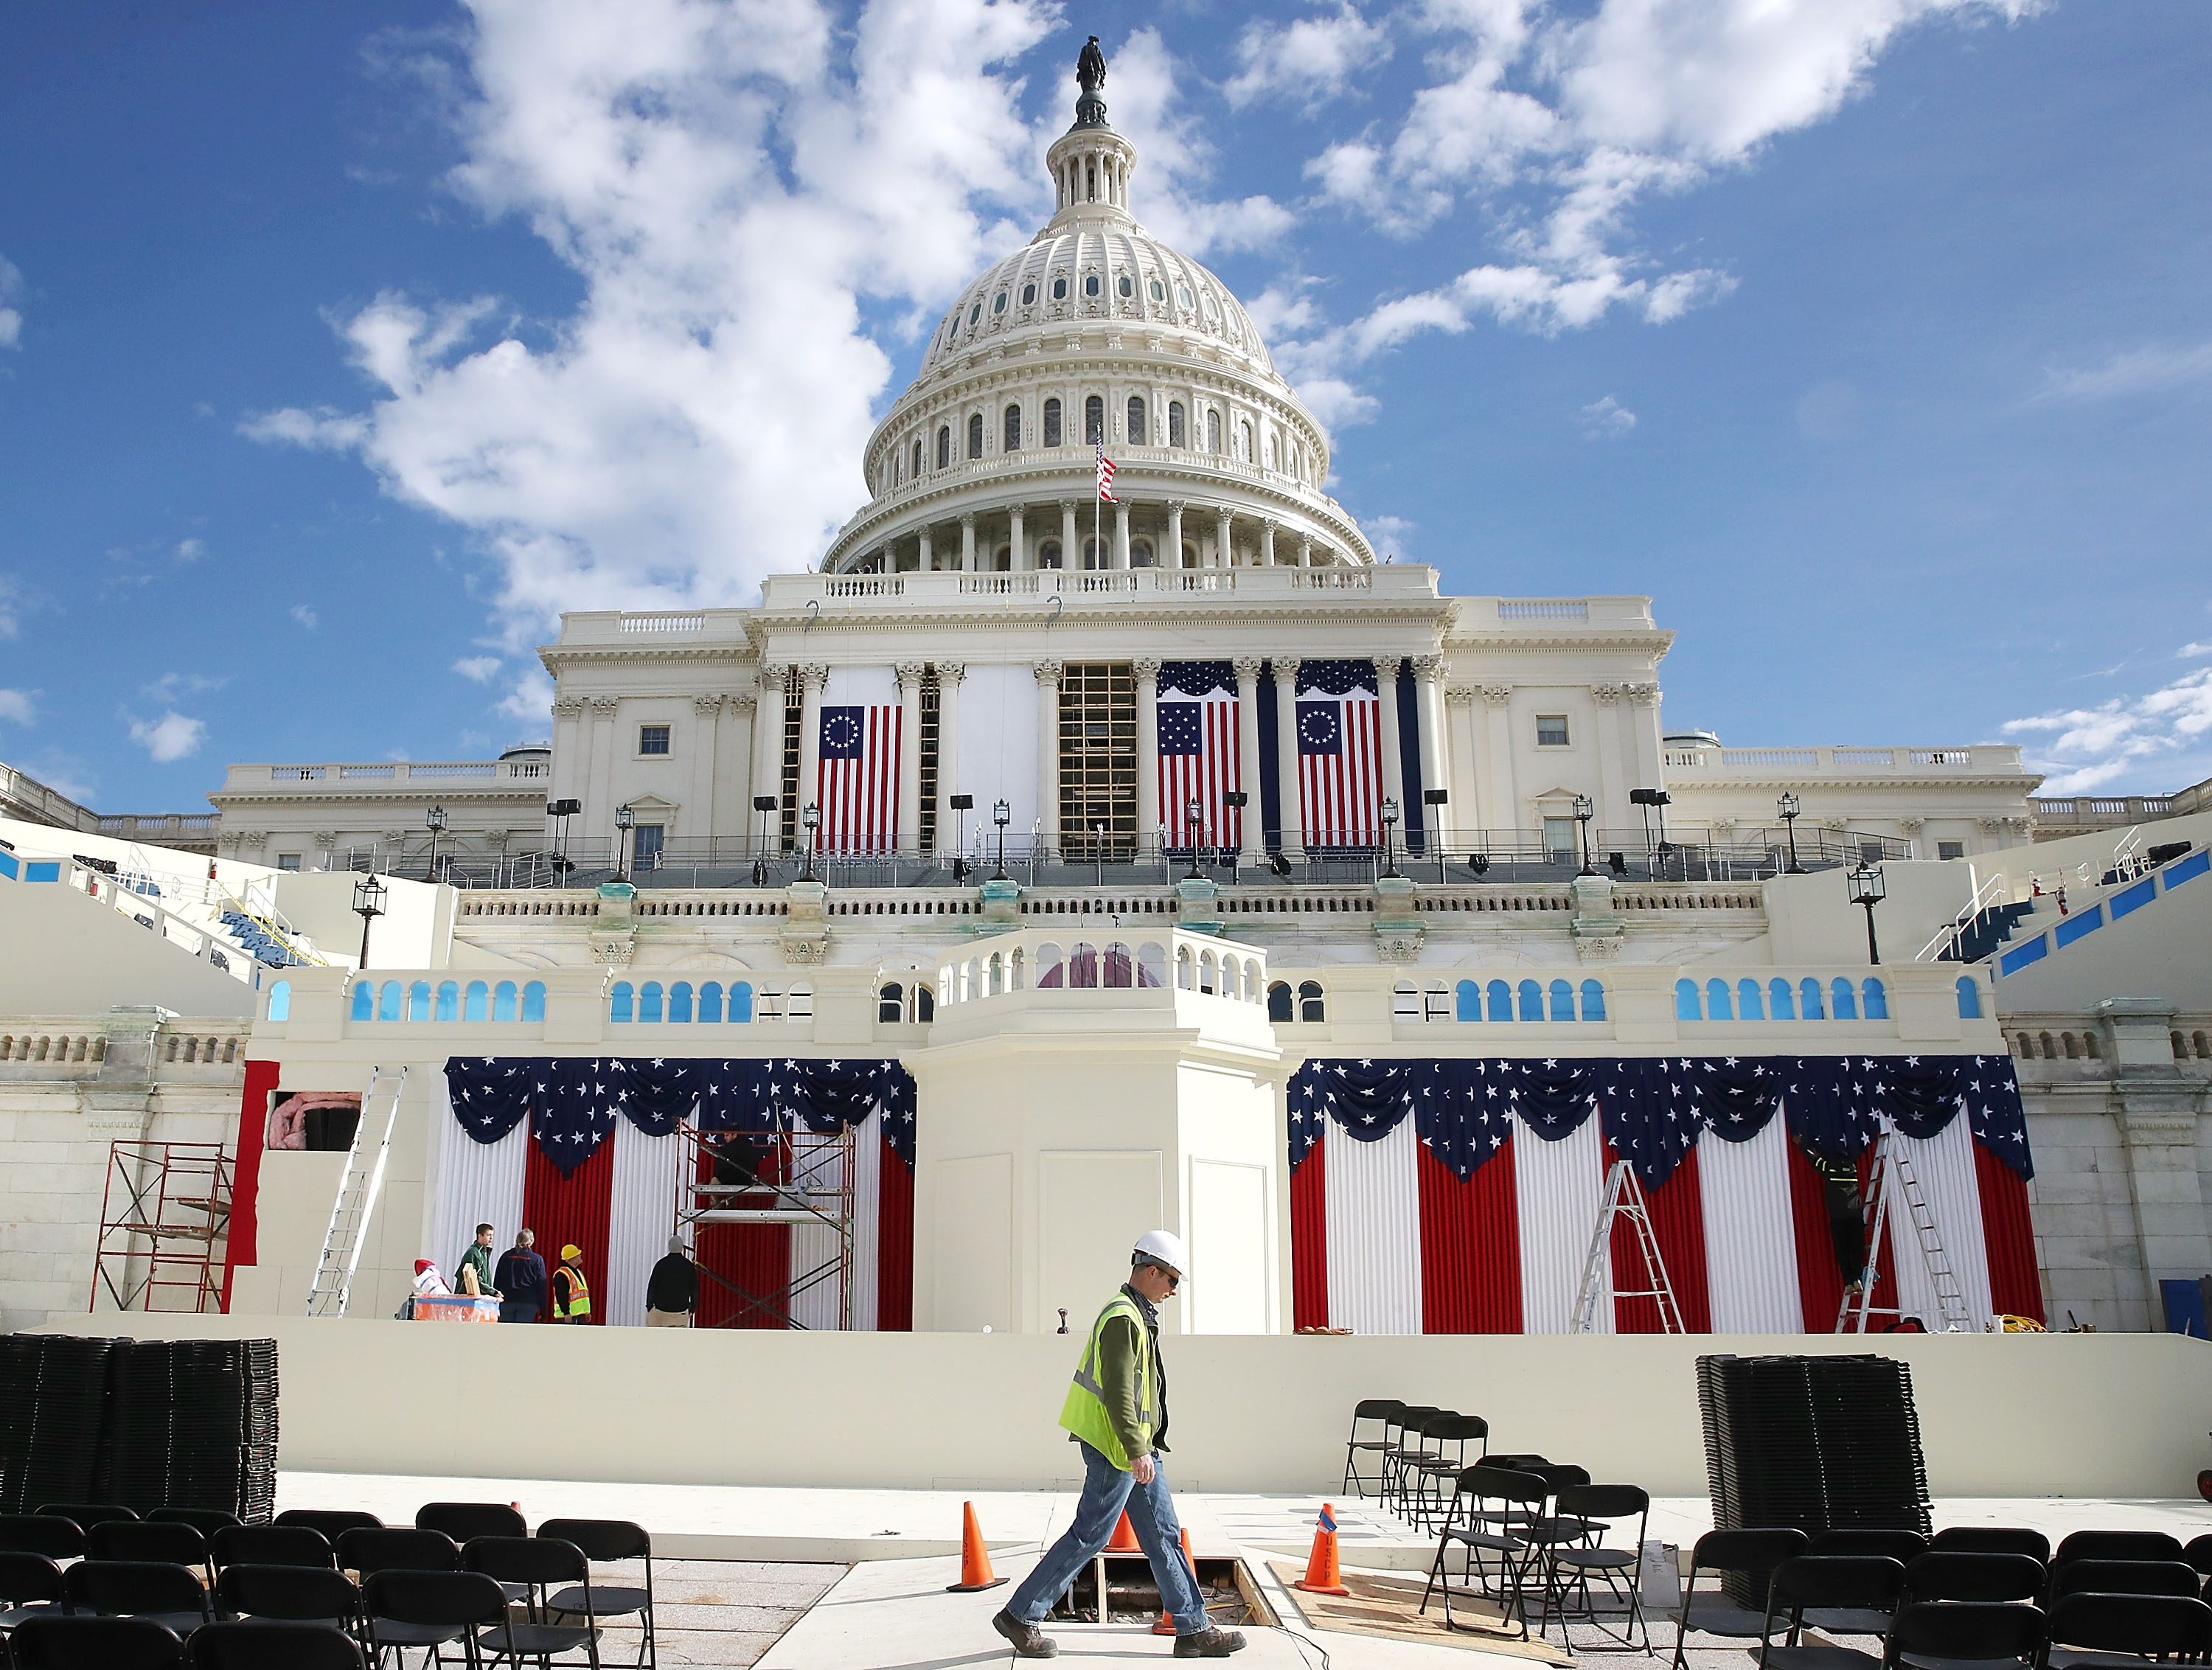 Work is still being performed on the stage ahead of next week inauguration at the U.S. Capitol, on Jan.13, 2017 in Washington, DC.